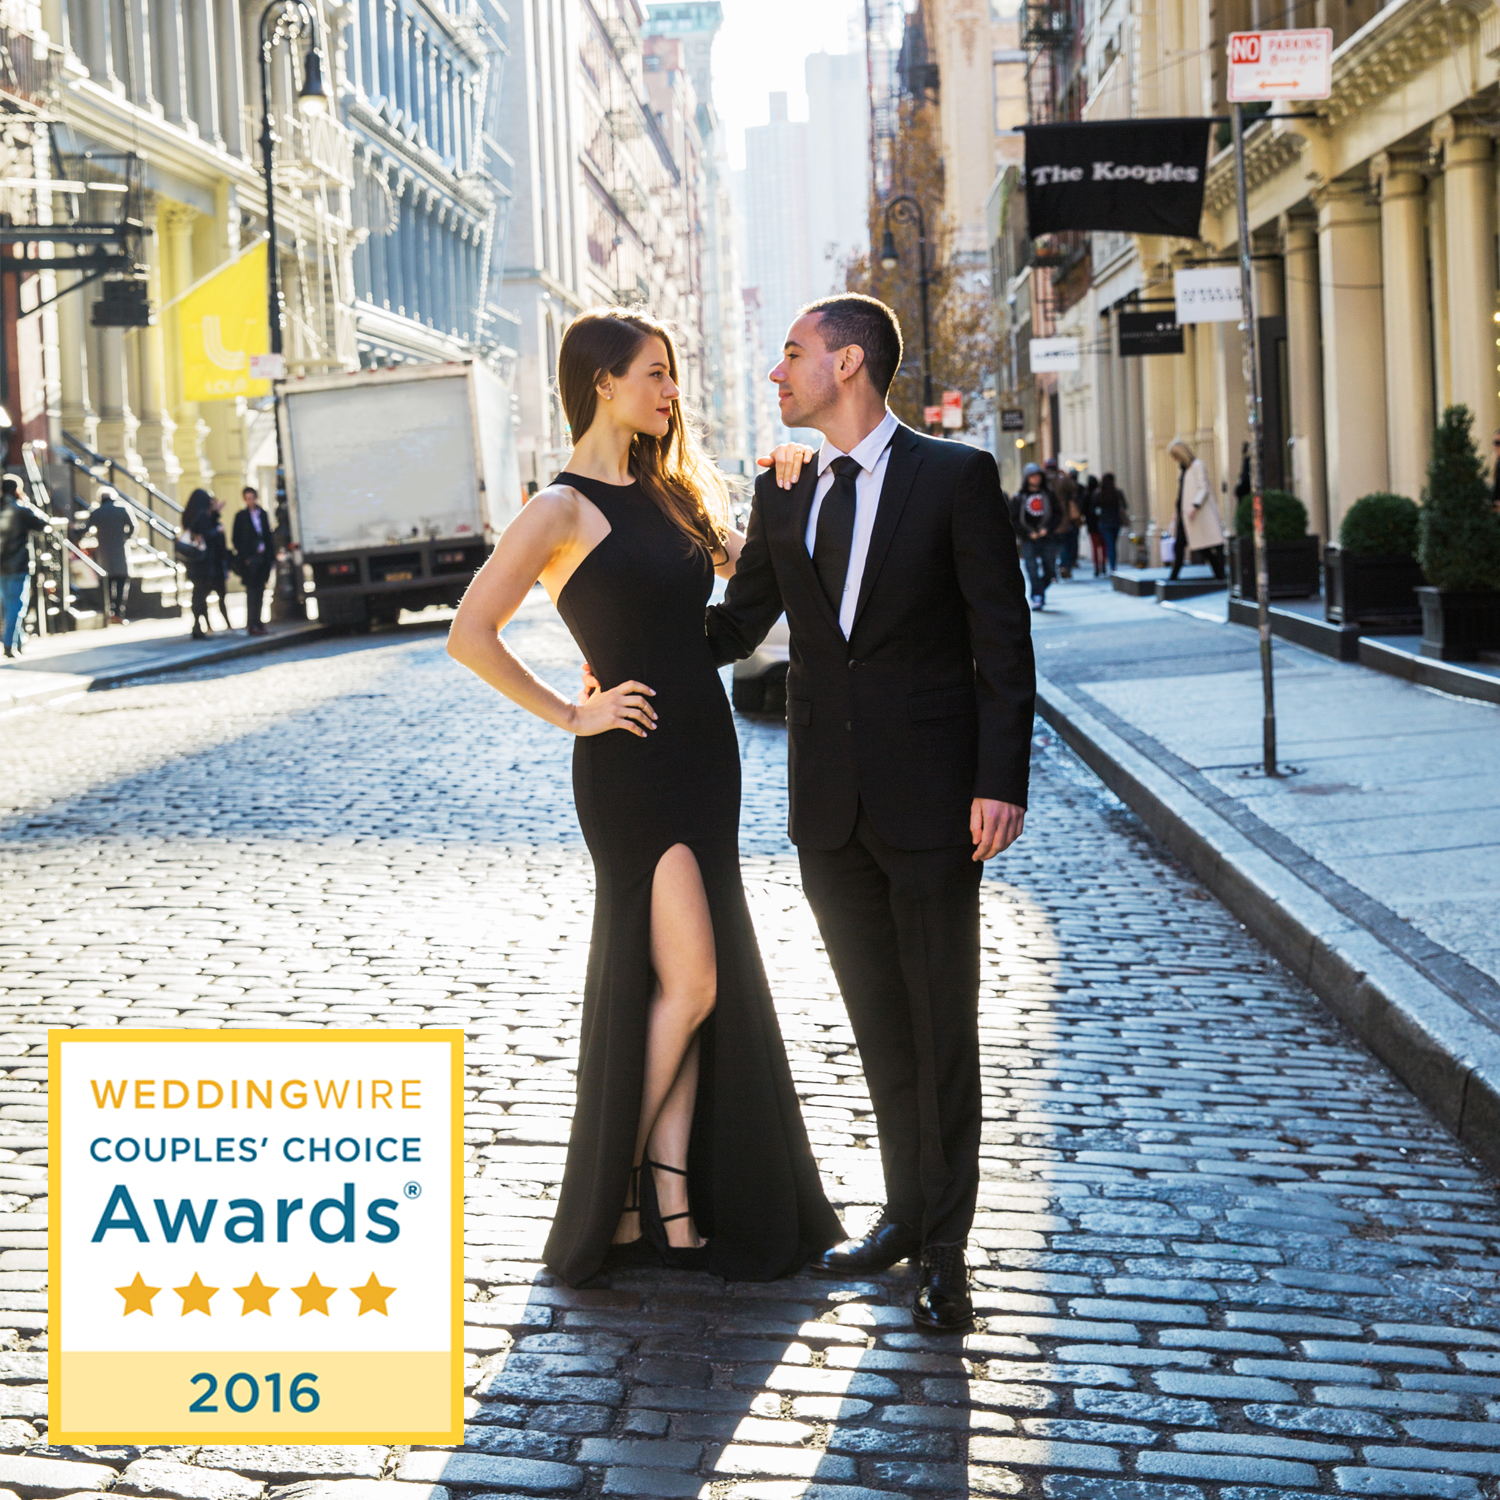 Karen Wise - WeddingWire Couples' Choice Award for 2016